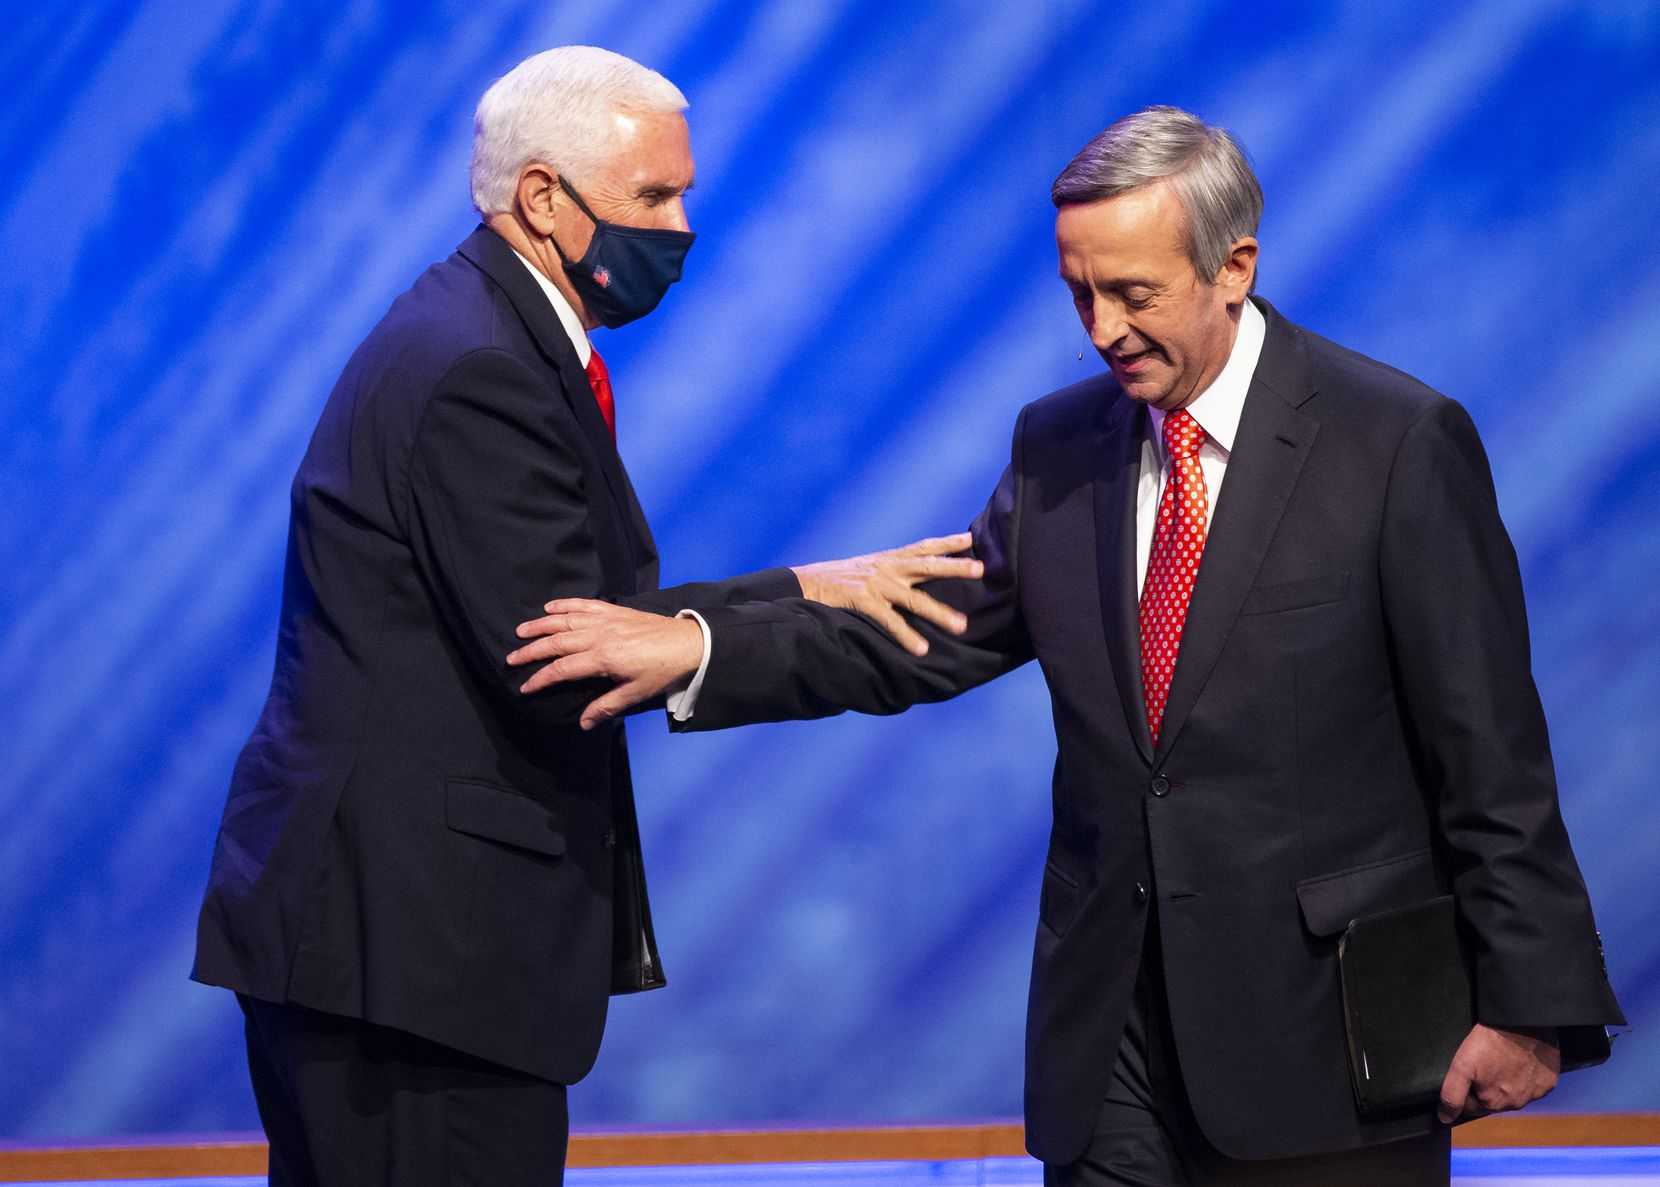 Pastor Robert Jeffress introduces Vice President Mike Pence before speaking at First Baptist Church's Celebrate Freedom event in downtown Dallas on June 28.